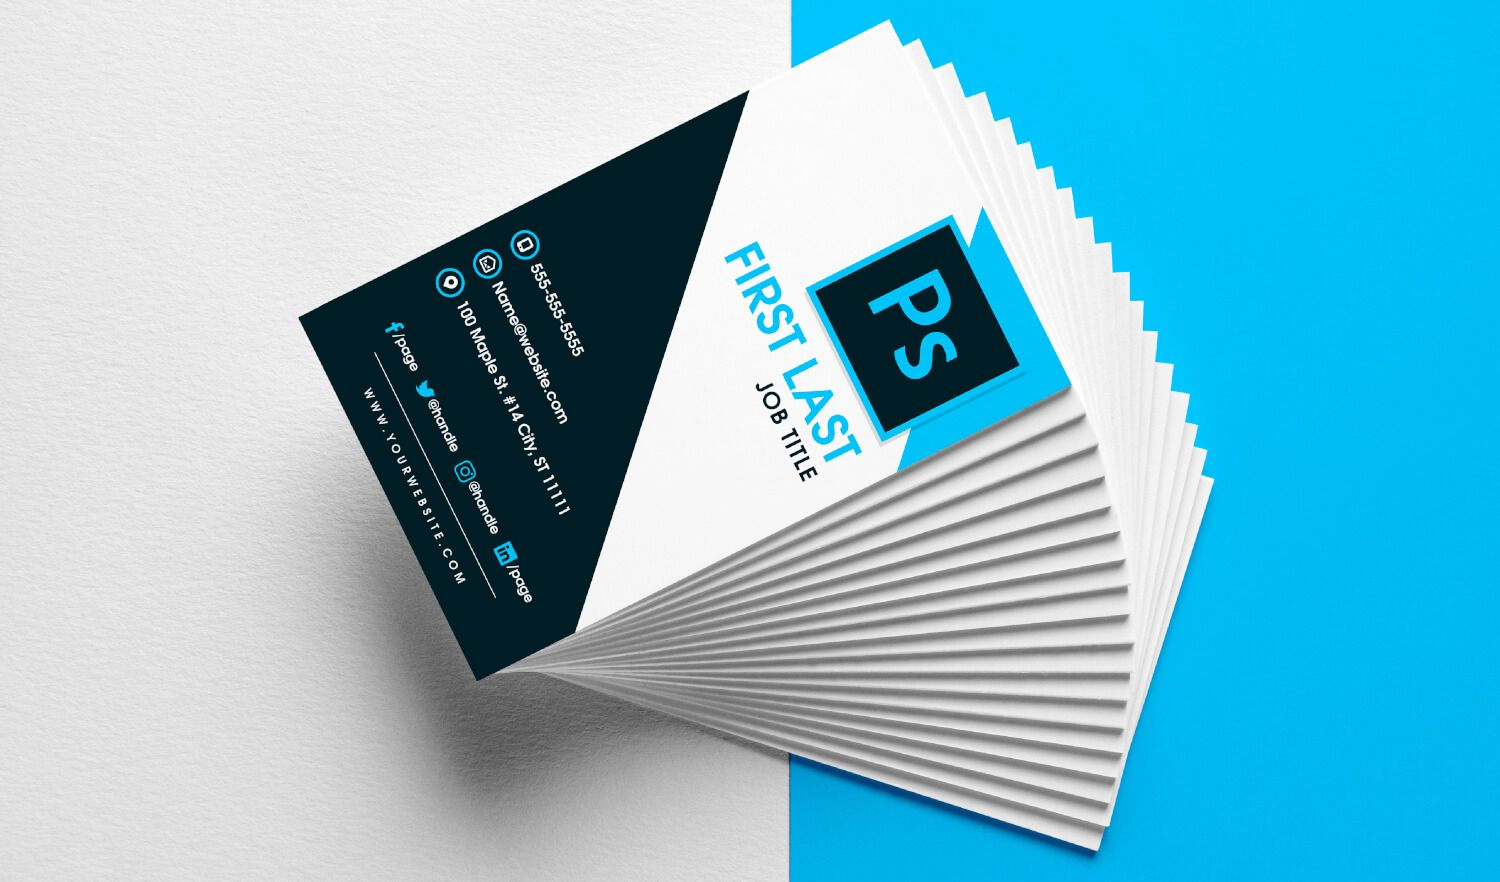 Free Vertical Business Card Template In Psd Format Regarding Name Card Vertical Business Card Template Business Card Template Photoshop Vertical Business Cards